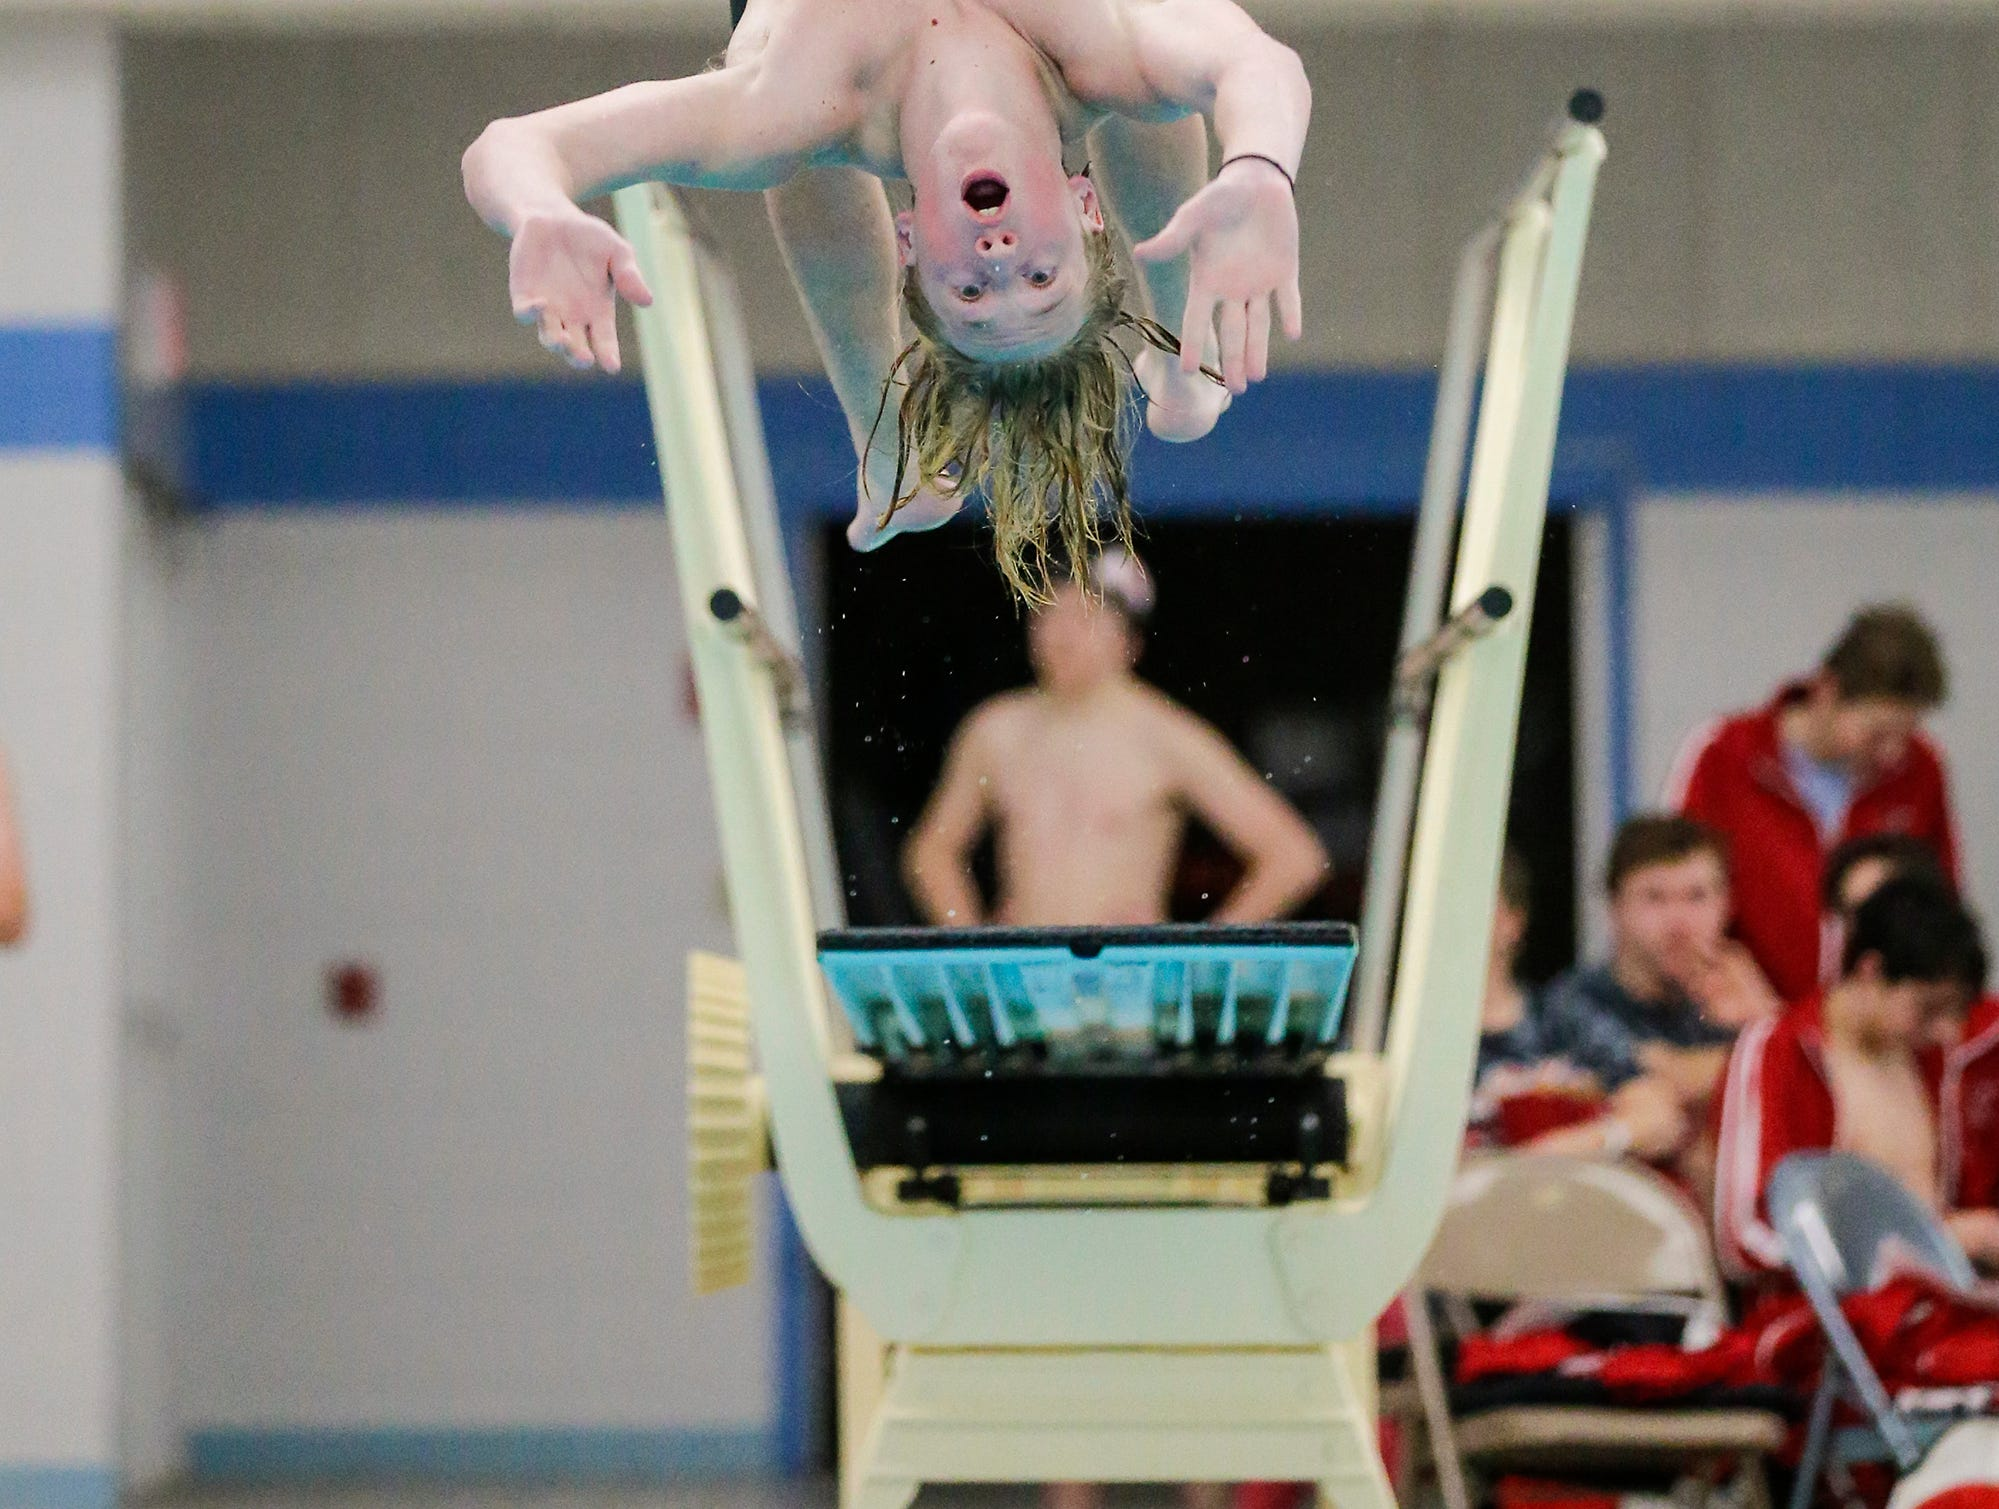 Fond du Lac High School's Charlie Quast competes in the diving competition against Neenah High School during their swim meet Tuesday, December 11, 2018 in Fond du Lac, Wisconsin. Doug Raflik/USA TODAY NETWORK-Wisconsin